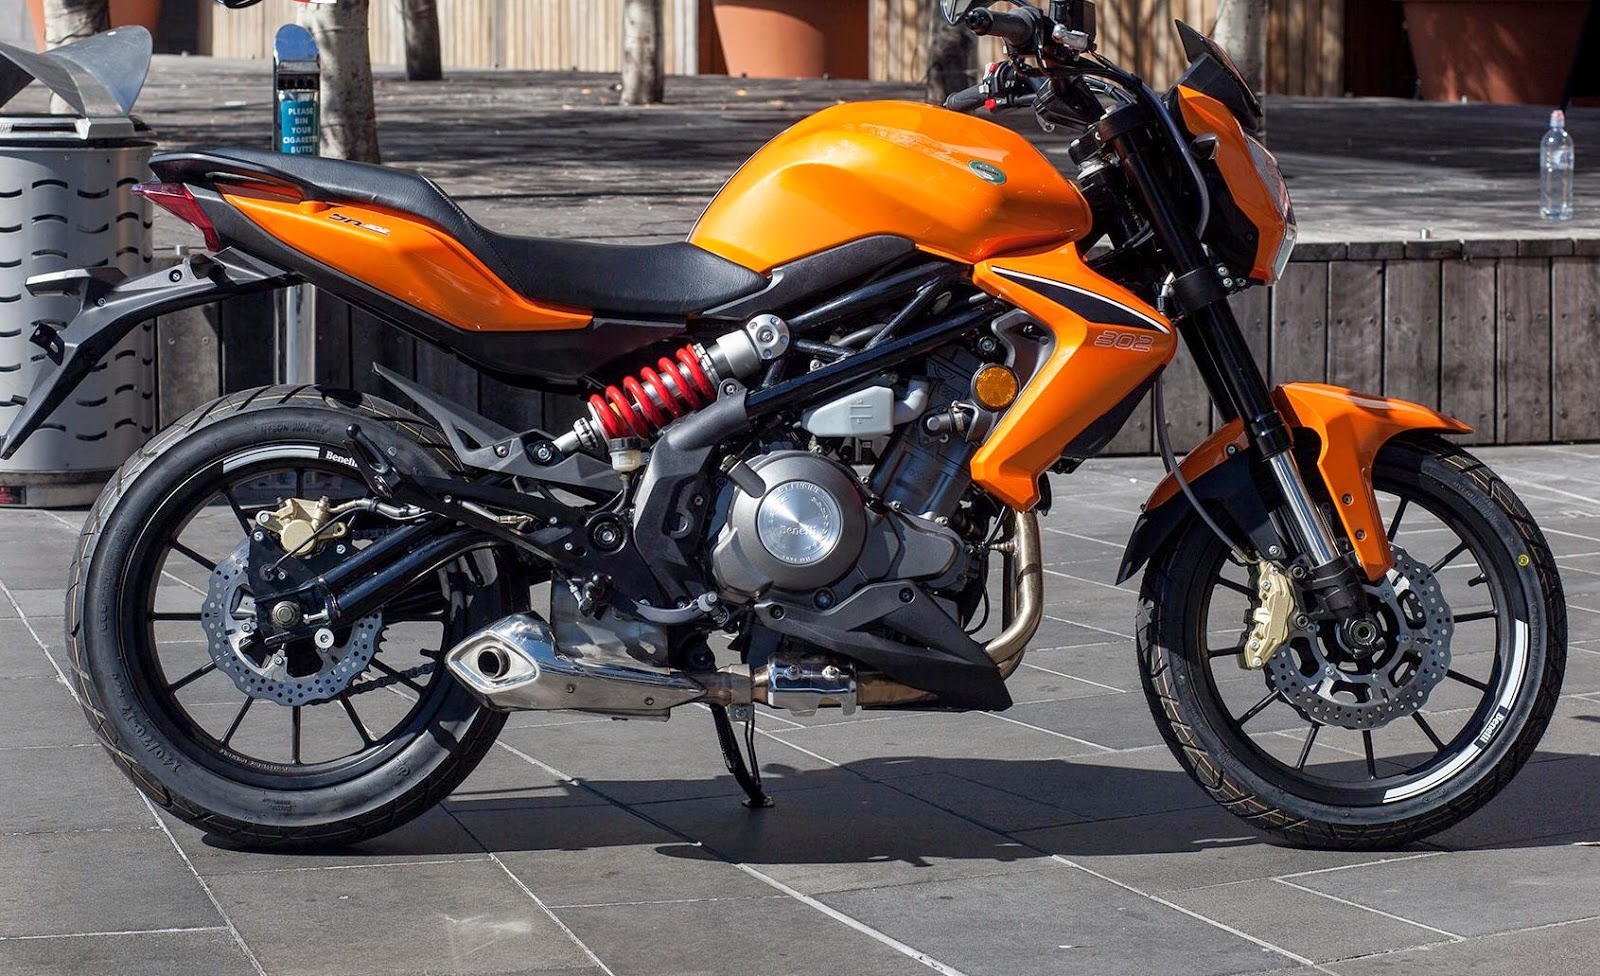 benelli 302 bn india motorcycle launch ready bike bn302